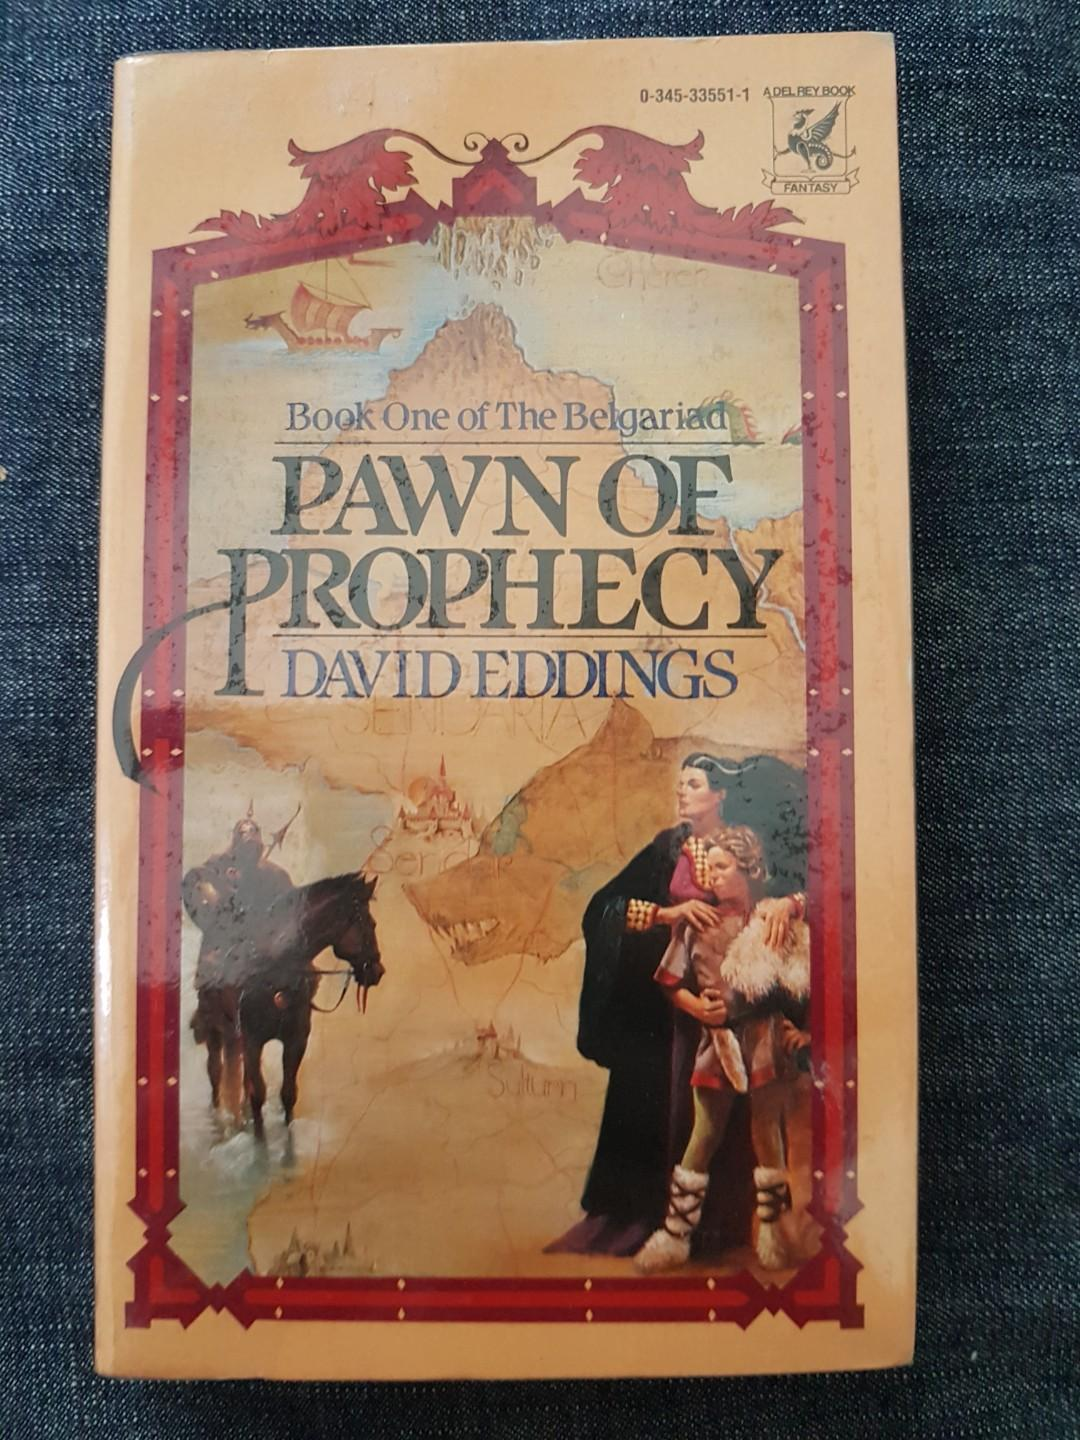 Pawn of Prophecy: Book One of The Belgariad by David Eddings